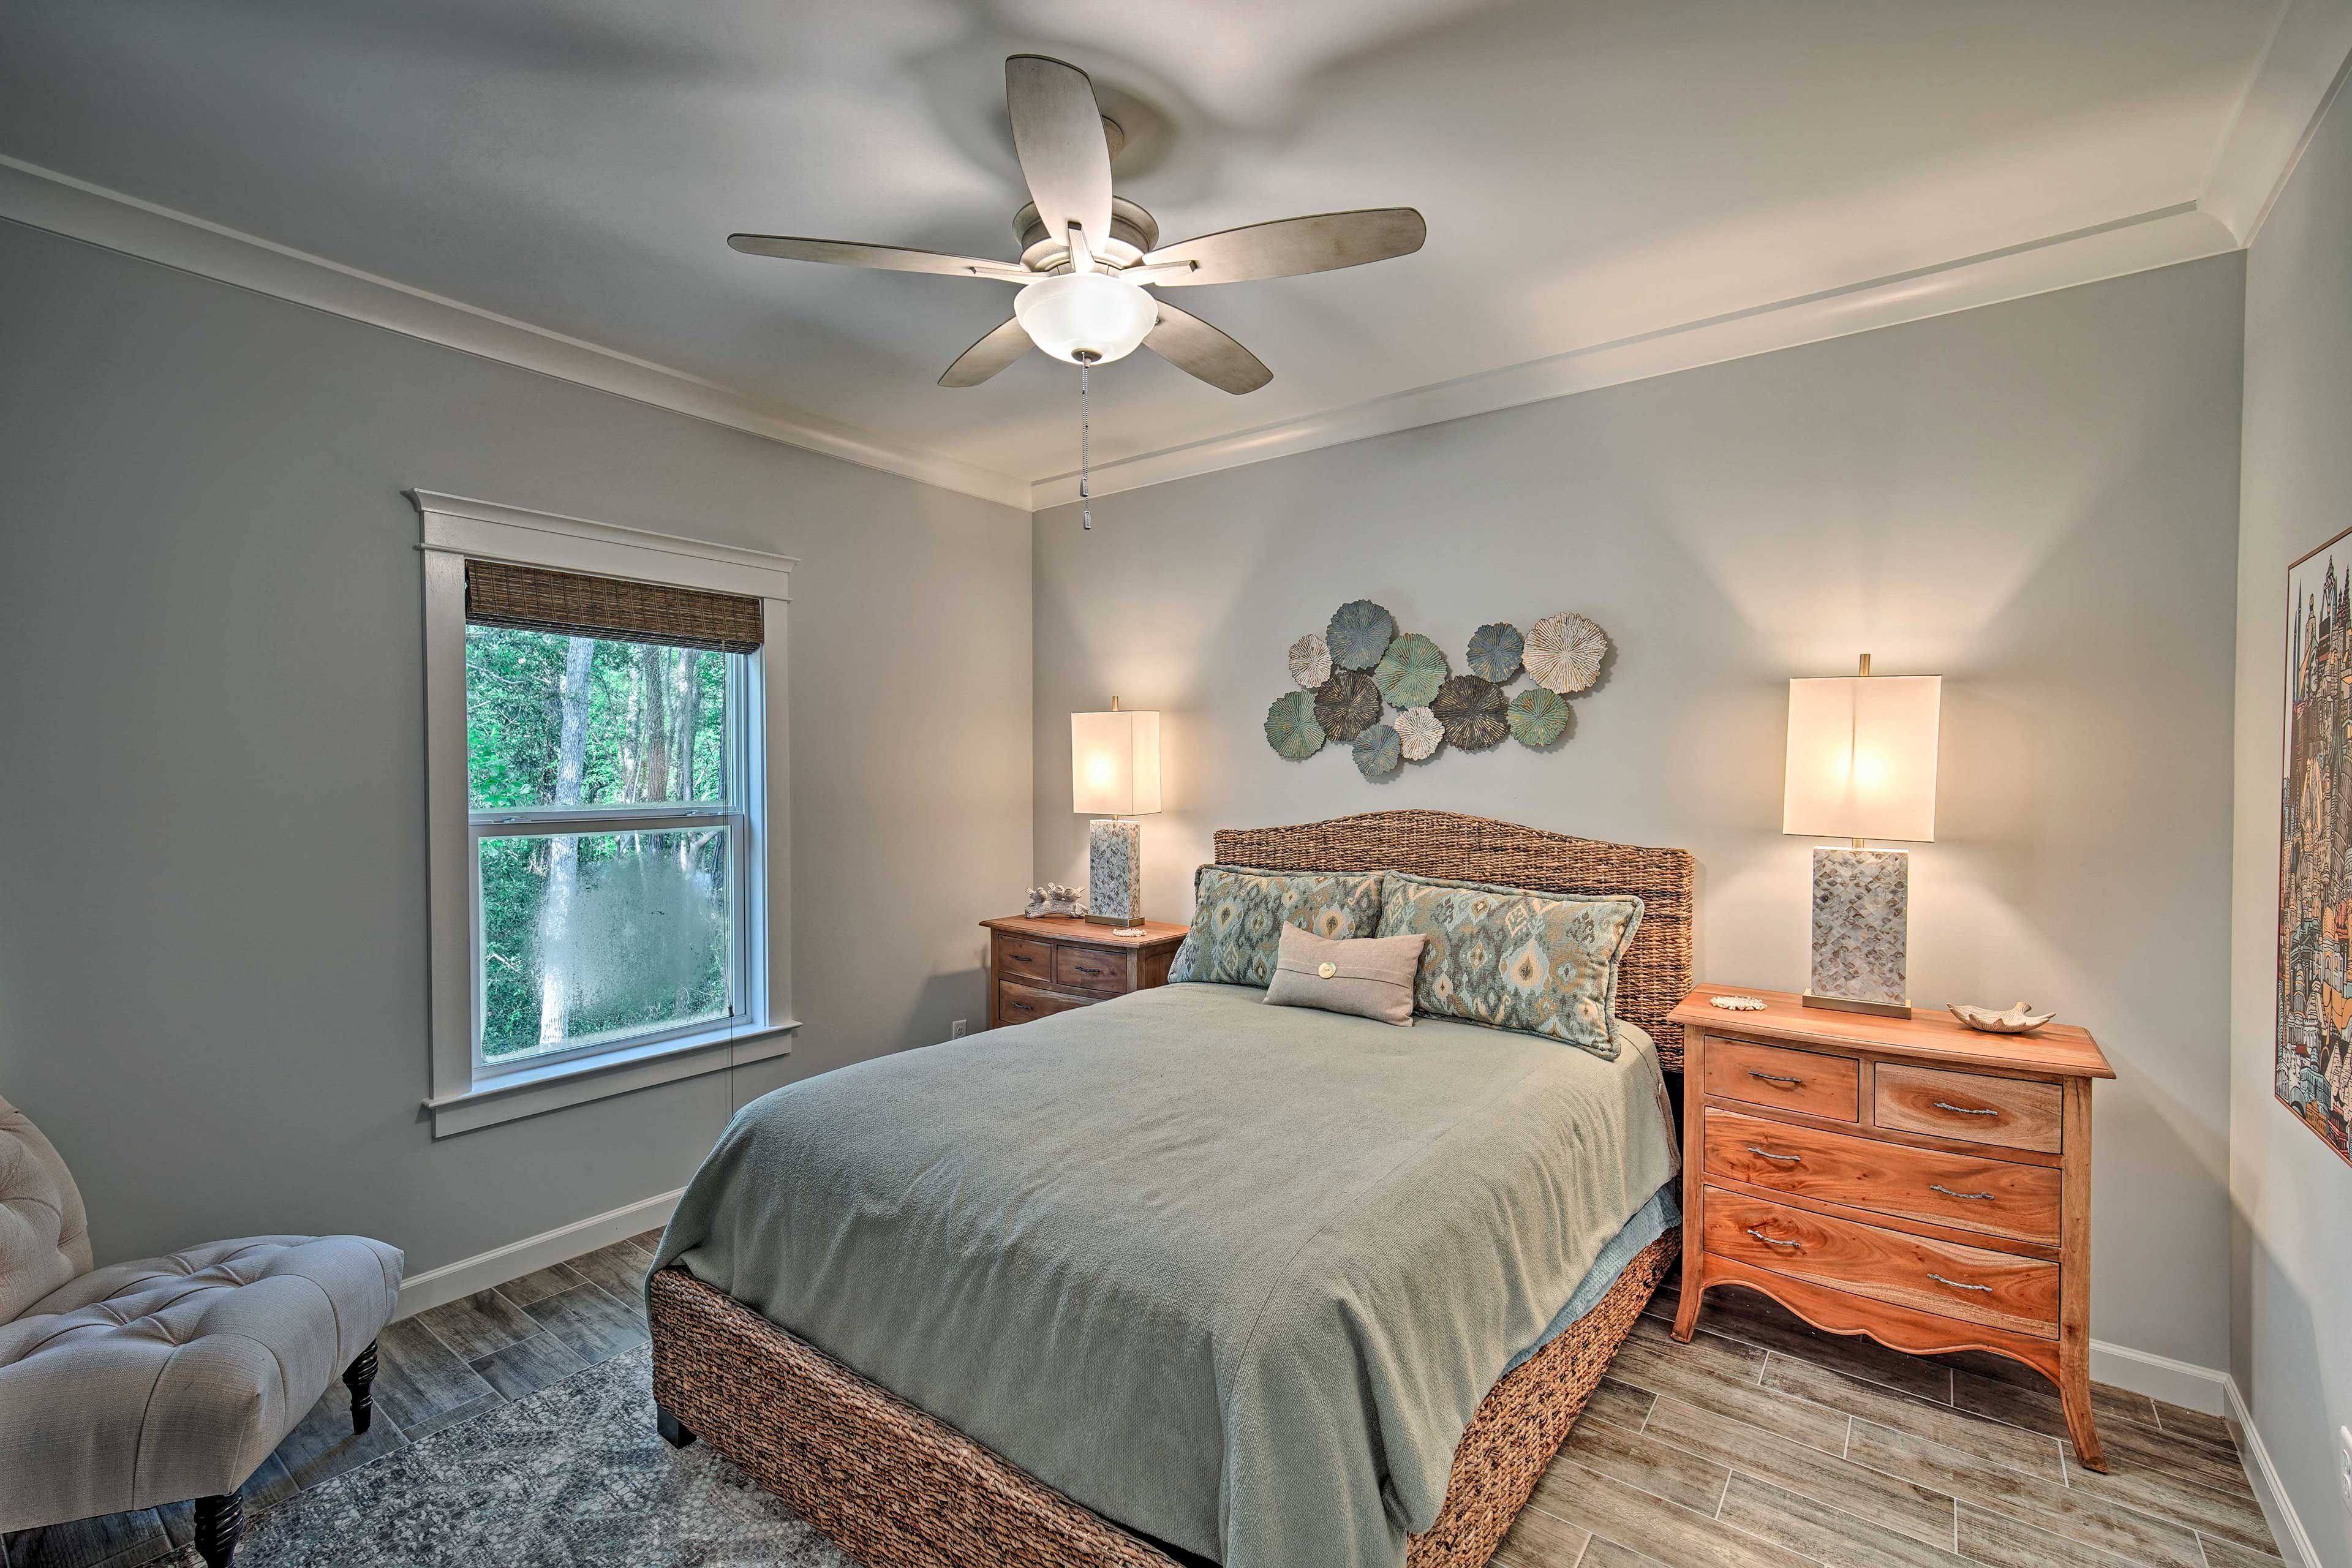 2 guests can share this room with a queen bed.